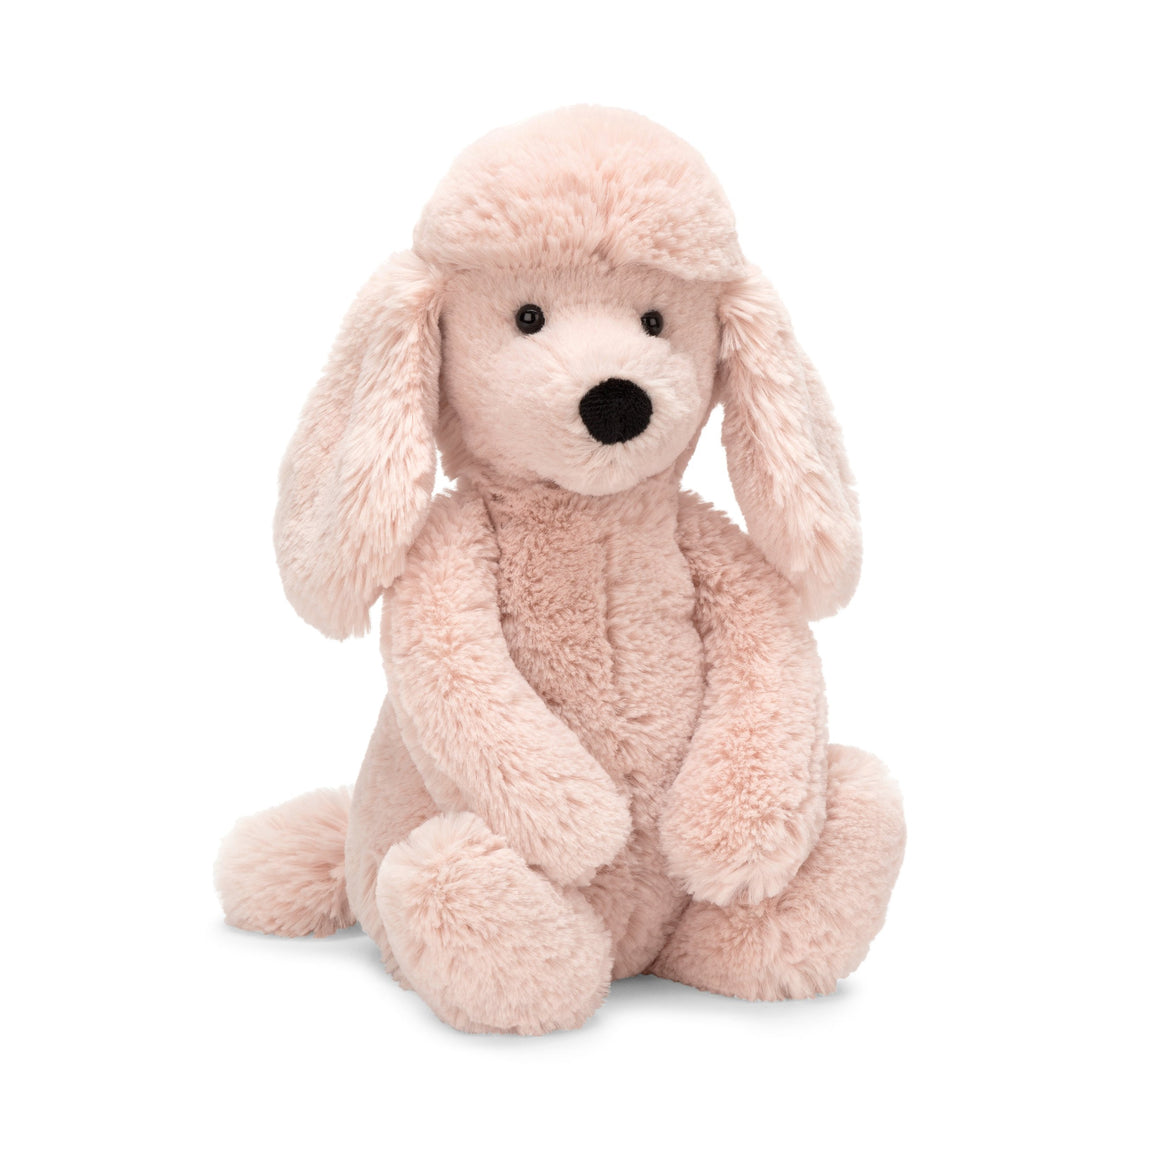 Jellycat Bashful Blush Poodle - Medium